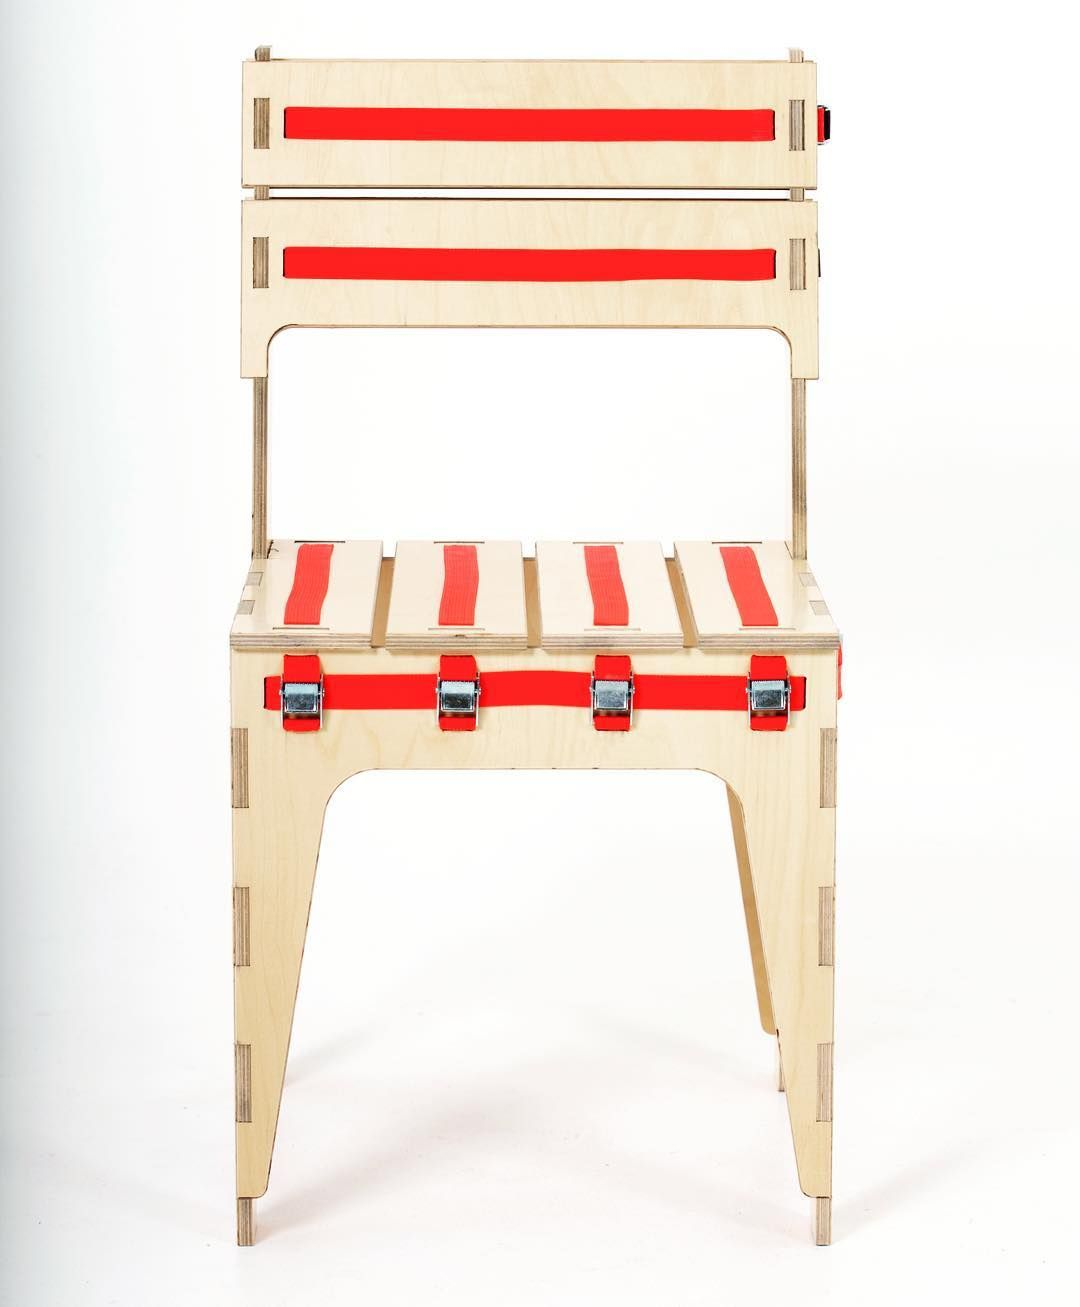 The Strap Chair Flatpack Design Using